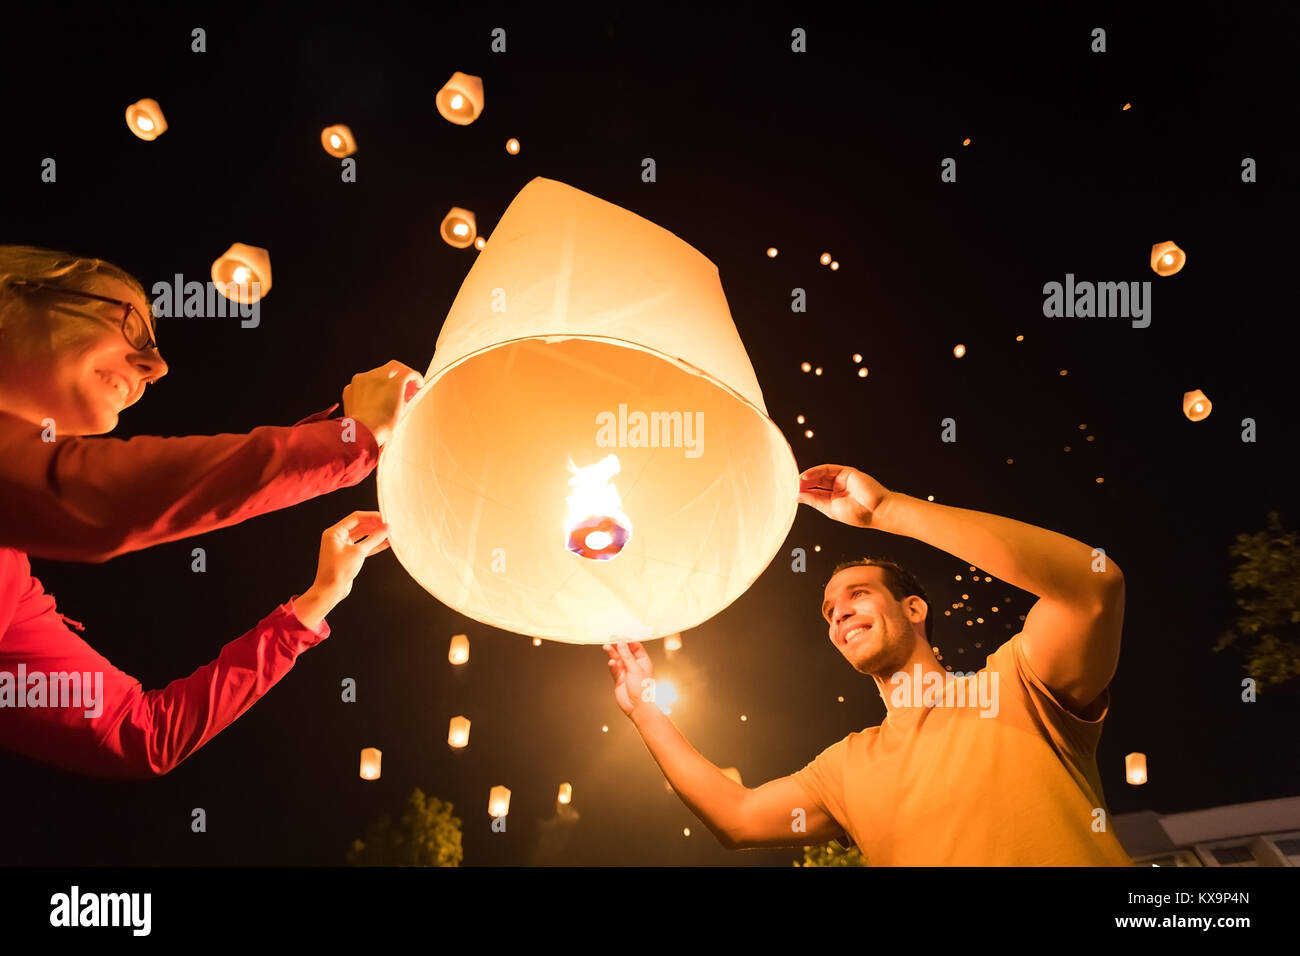 Two people releasing a traditional flying lantern at Yi Peng / Loy Krathong festival in Chiang Mai, Thailand Stock Photo